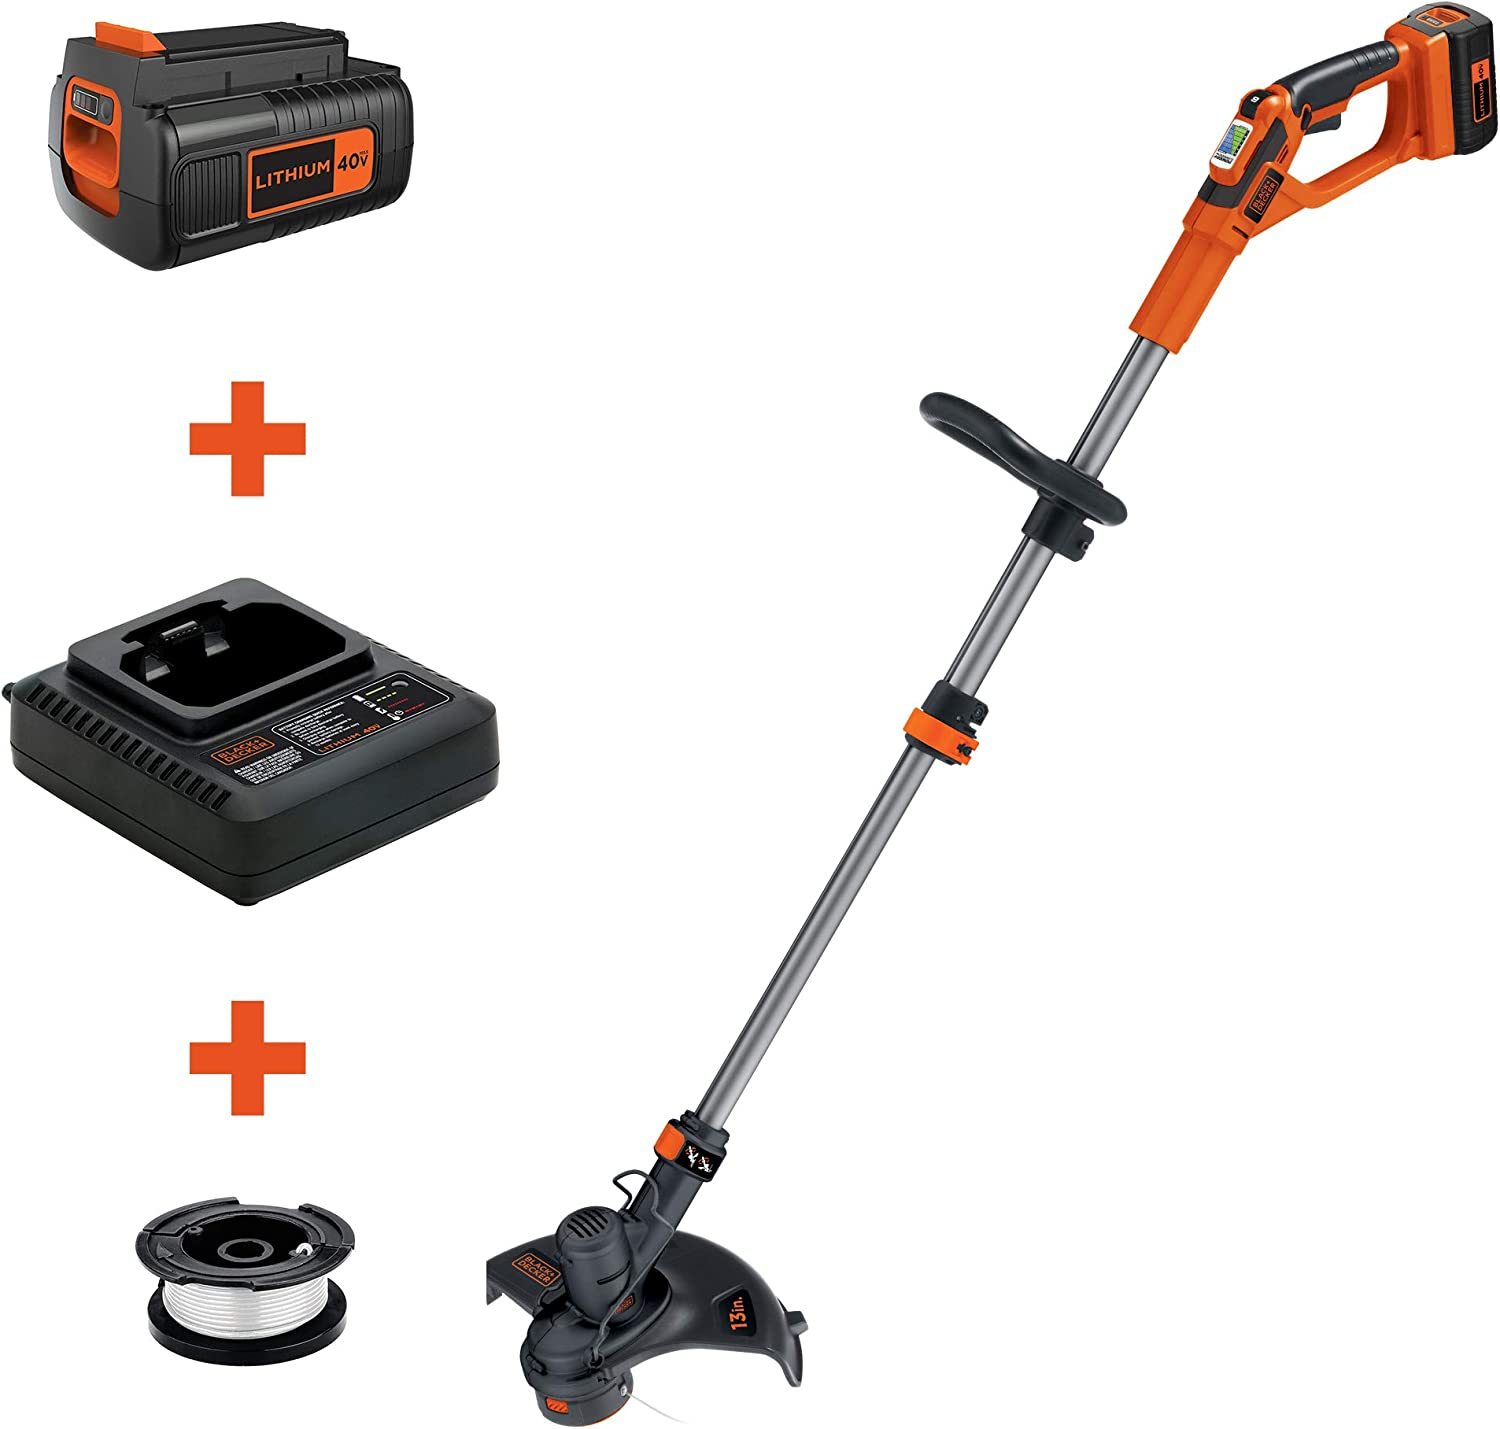 BLACK+DECKER (LST136) 40V MAX String Trimmer / Edger, 13-Inch